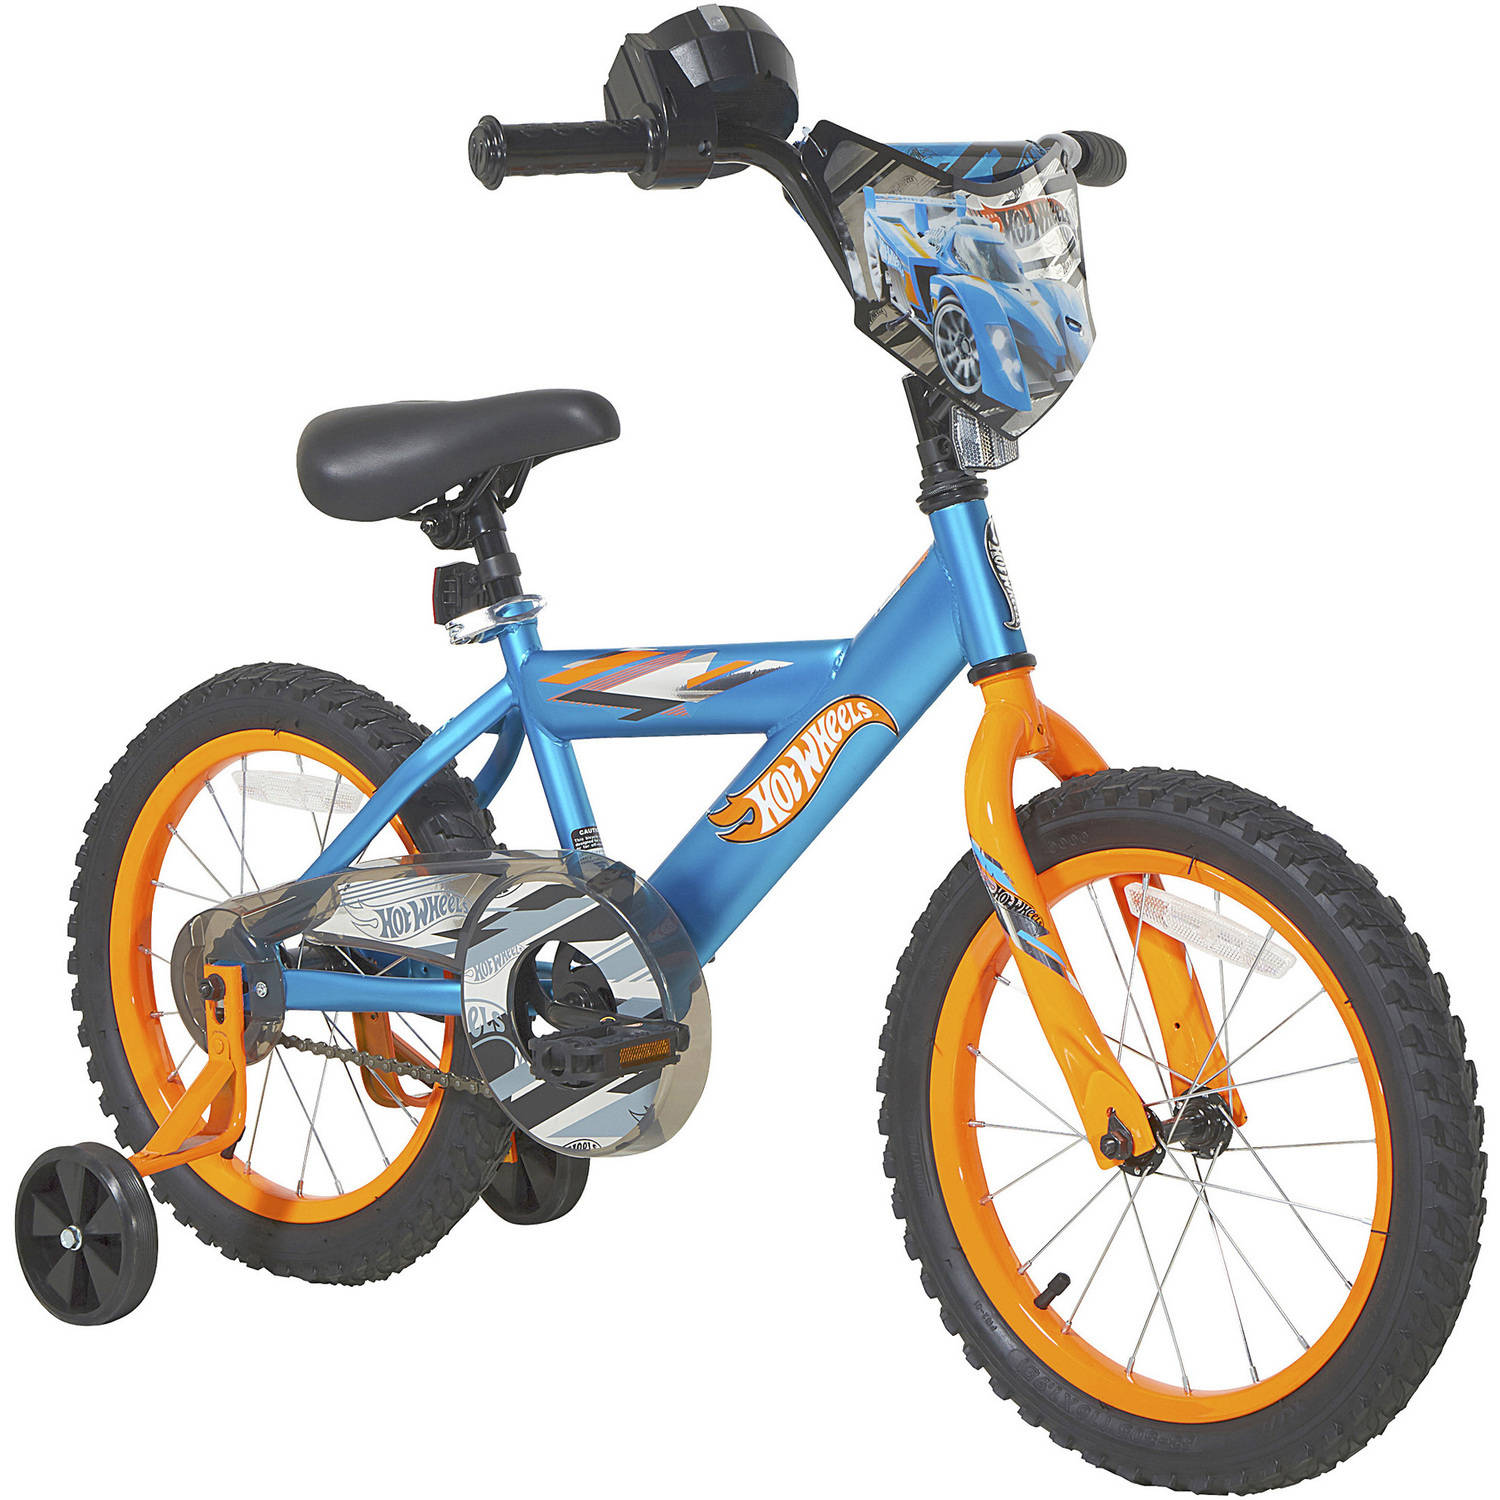 "Dynacraft 16"" Boys' Hot Wheels Bike"